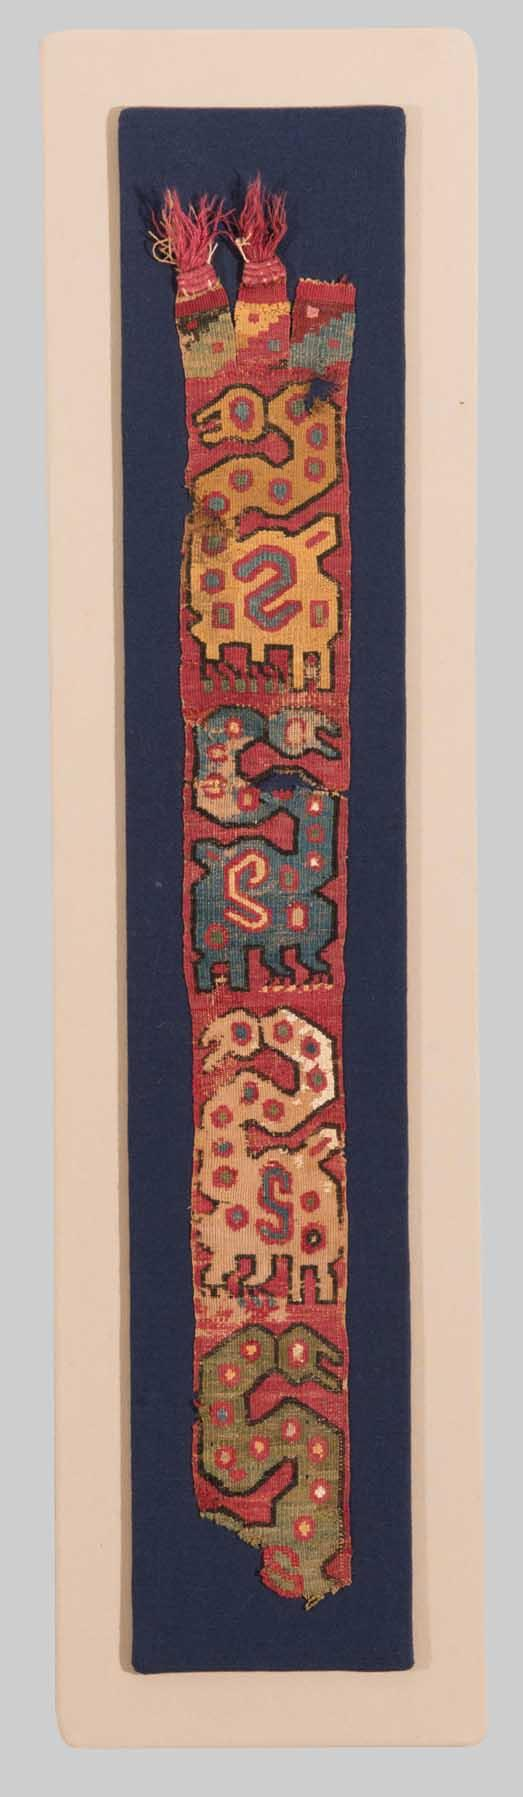 THREE TEXTILE FRAGMENTS; one: 2 ft. 5 in. x 3 in., one: 7 in. x 6 in.; one: 1 ft. 3 in. x 10 in.